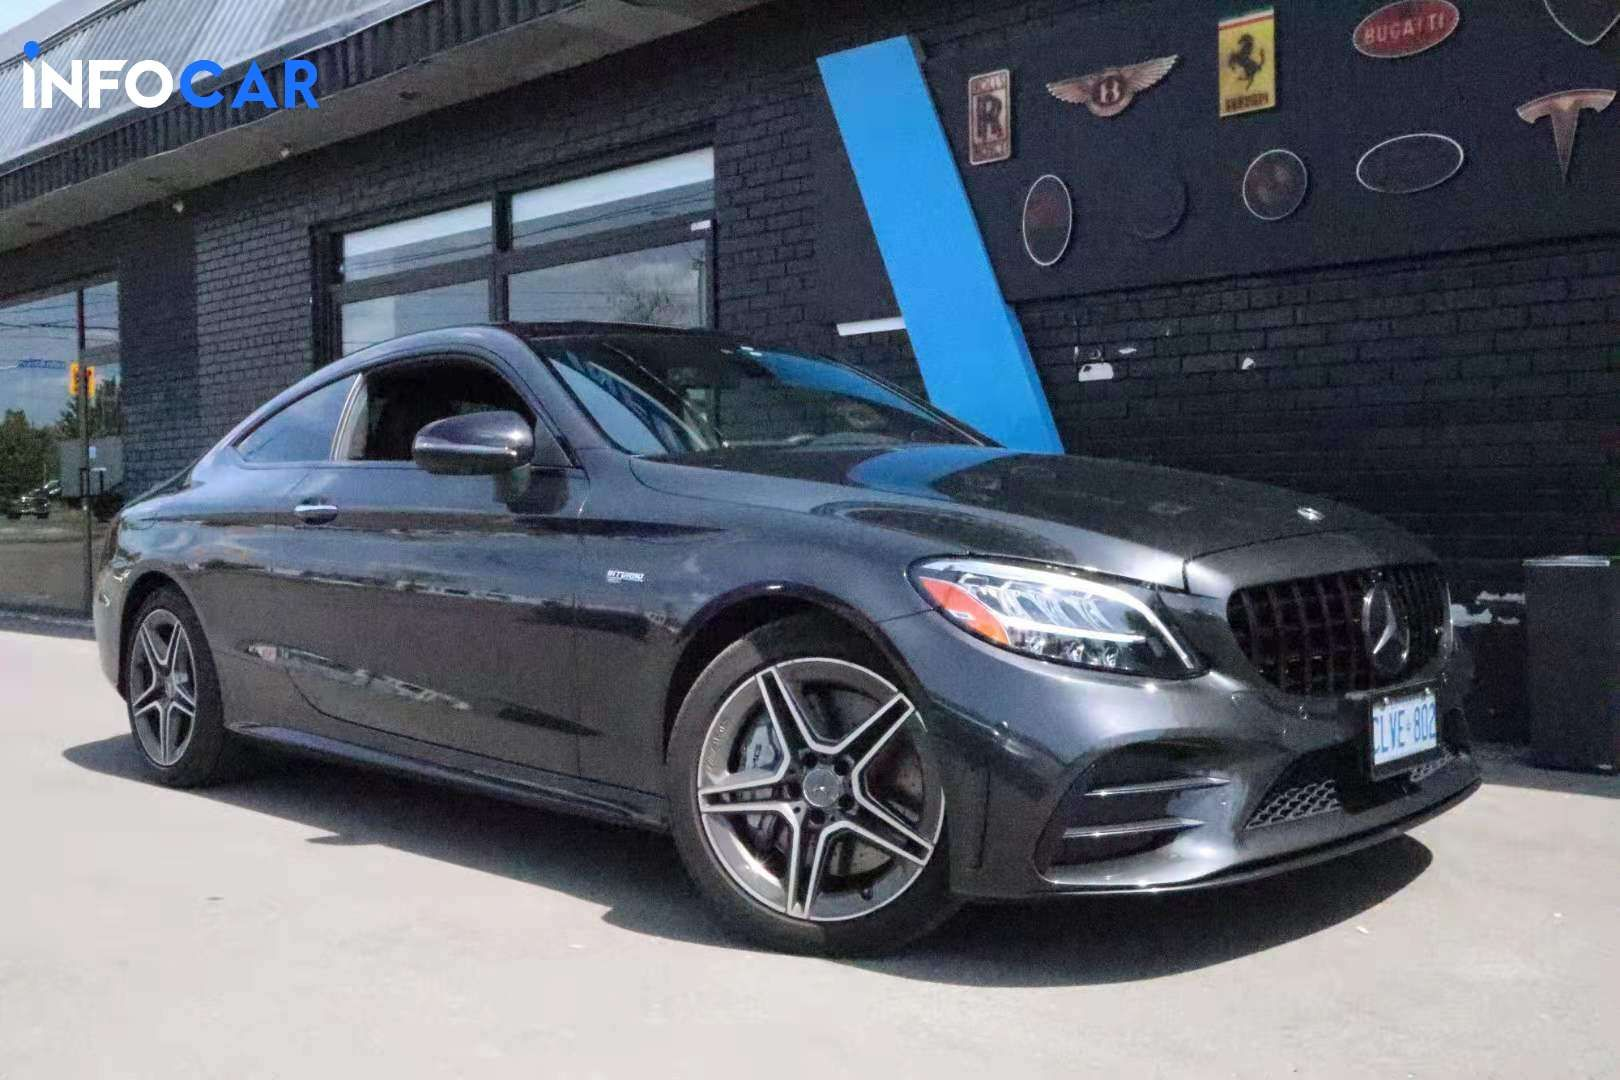 2020 Mercedes-Benz C-Class 43 AMG - INFOCAR - Toronto's Most Comprehensive New and Used Auto Trading Platform